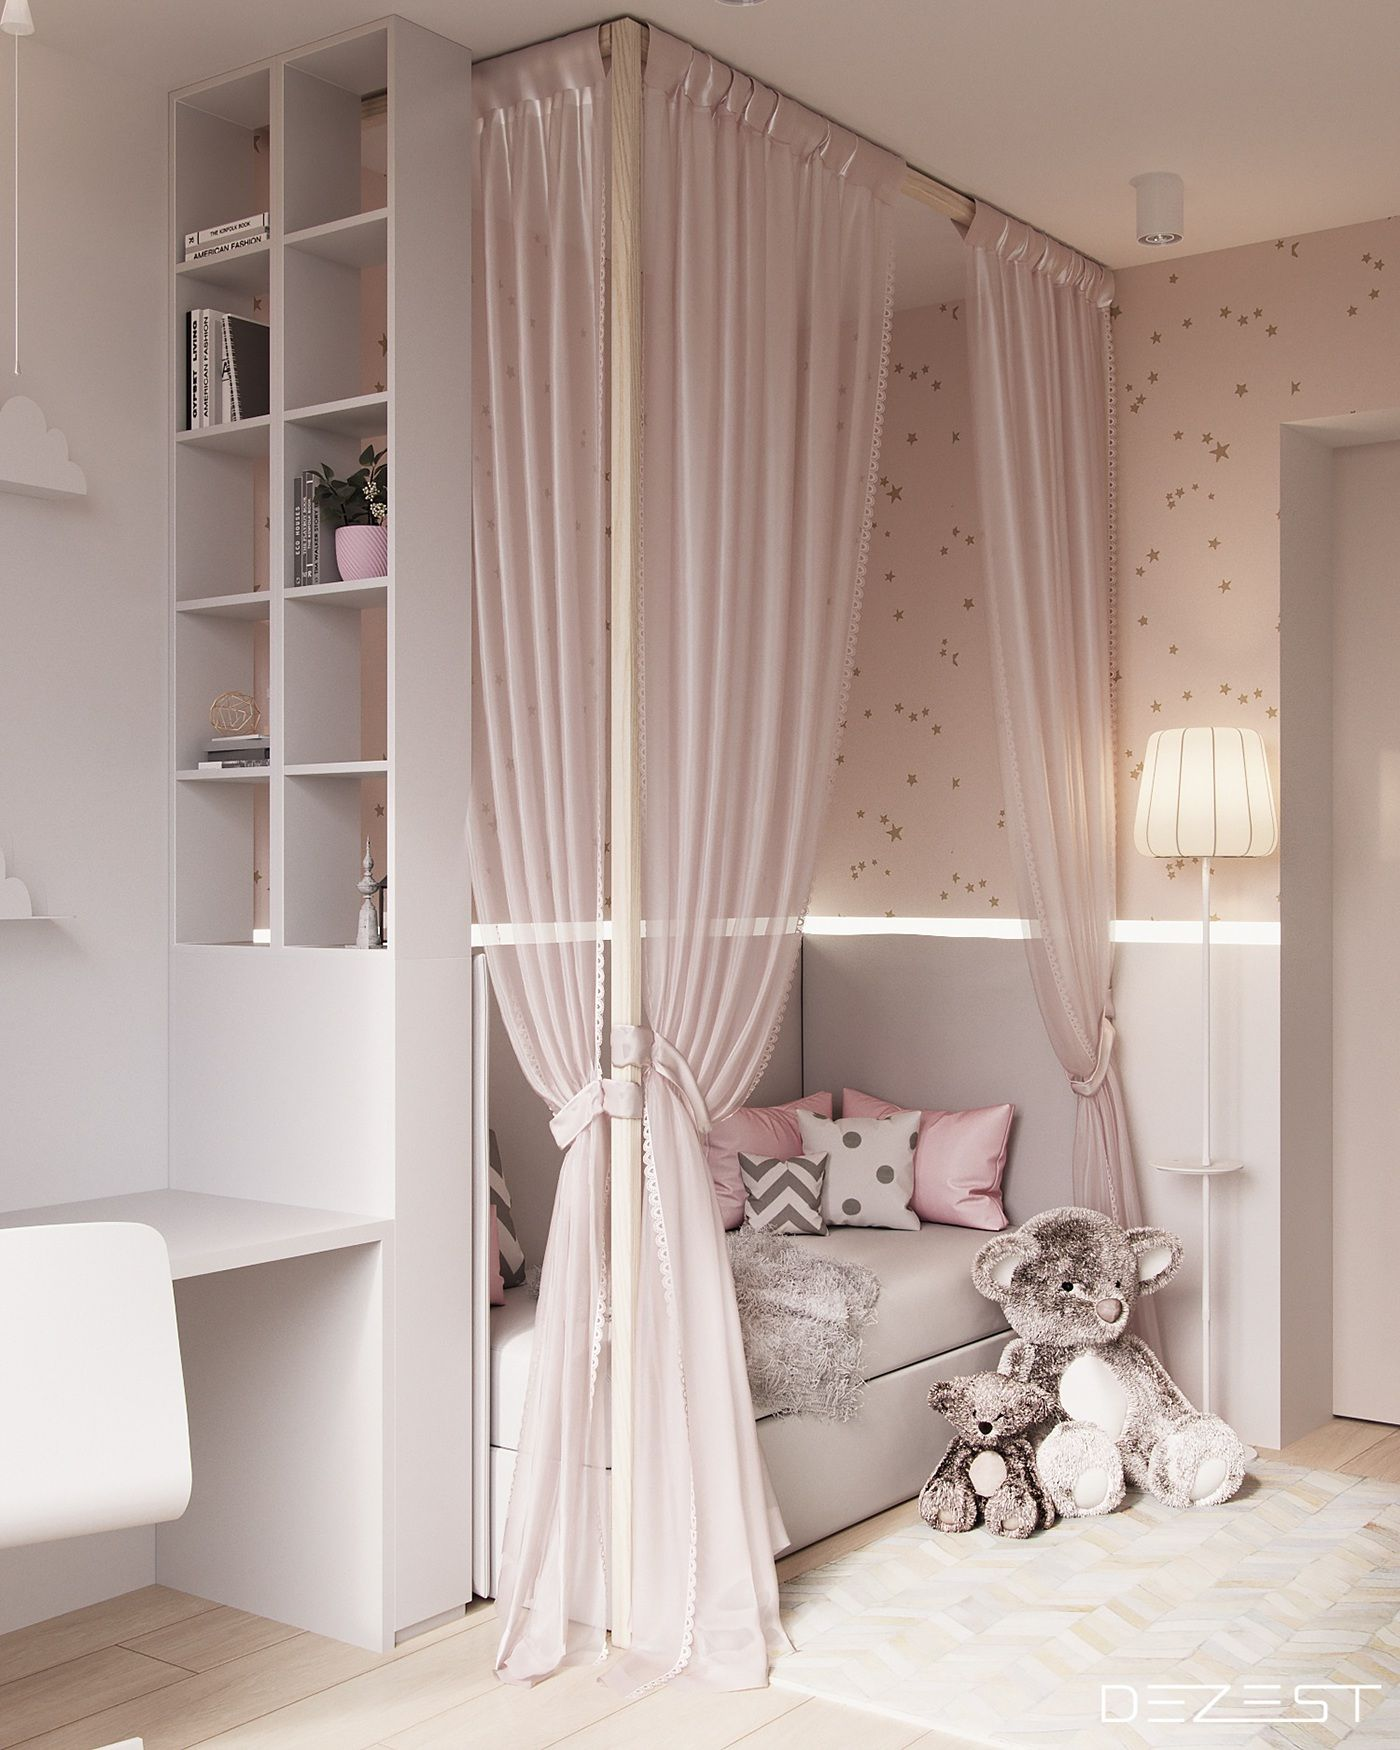 Schlafzimmer Altrosa Deko Kinderzimmer Filip Room Decor Kids Room Bedroom Decor